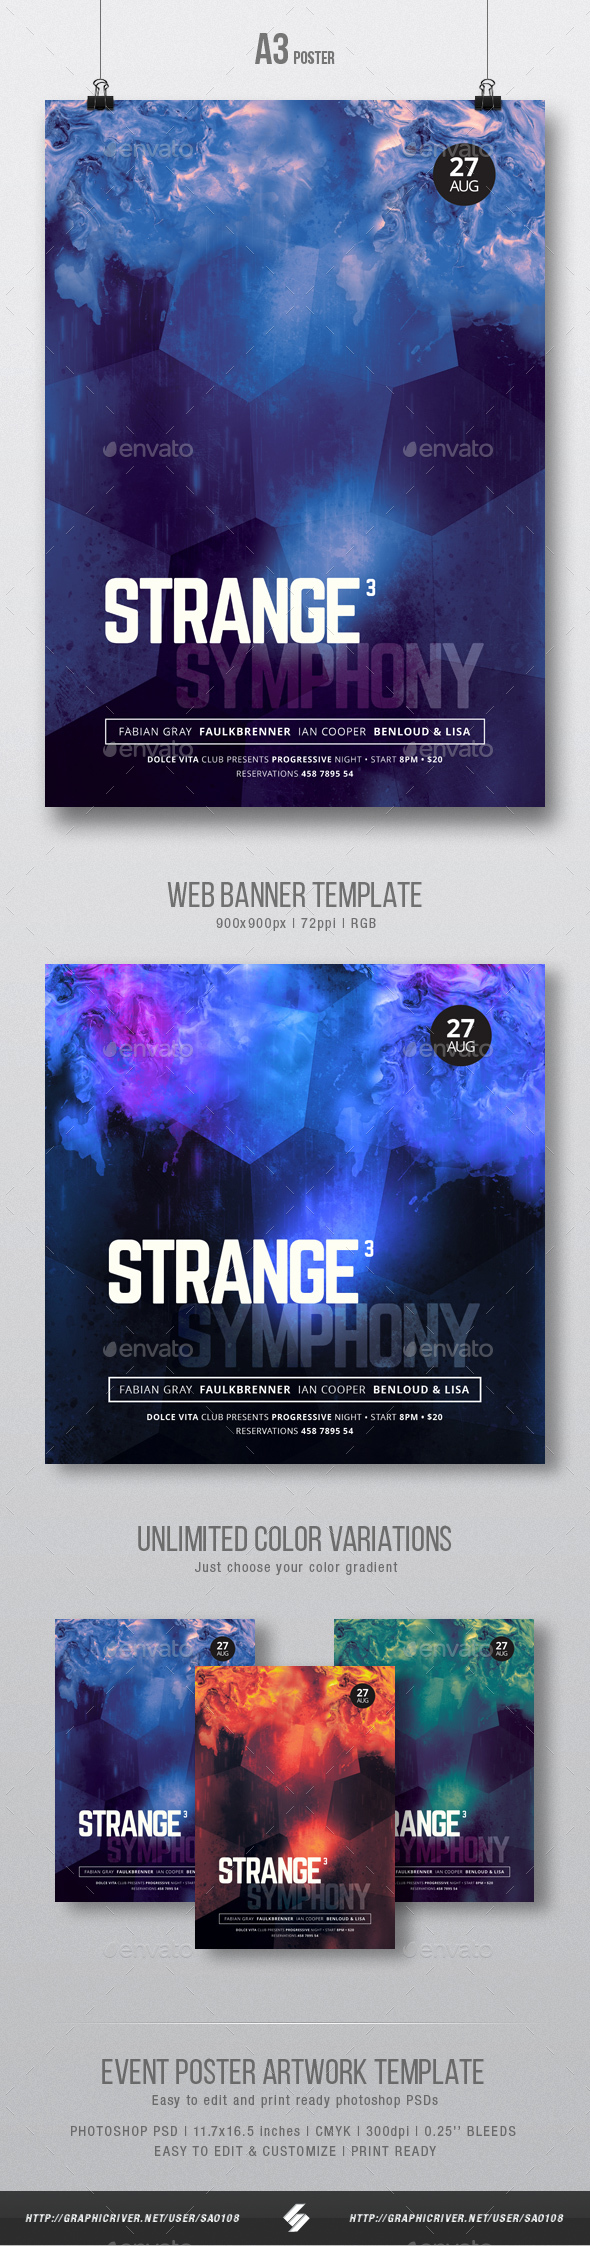 GraphicRiver Strange Symphony vol.3 Progressive Party Flyer Poster Artwork Template A3 20985465